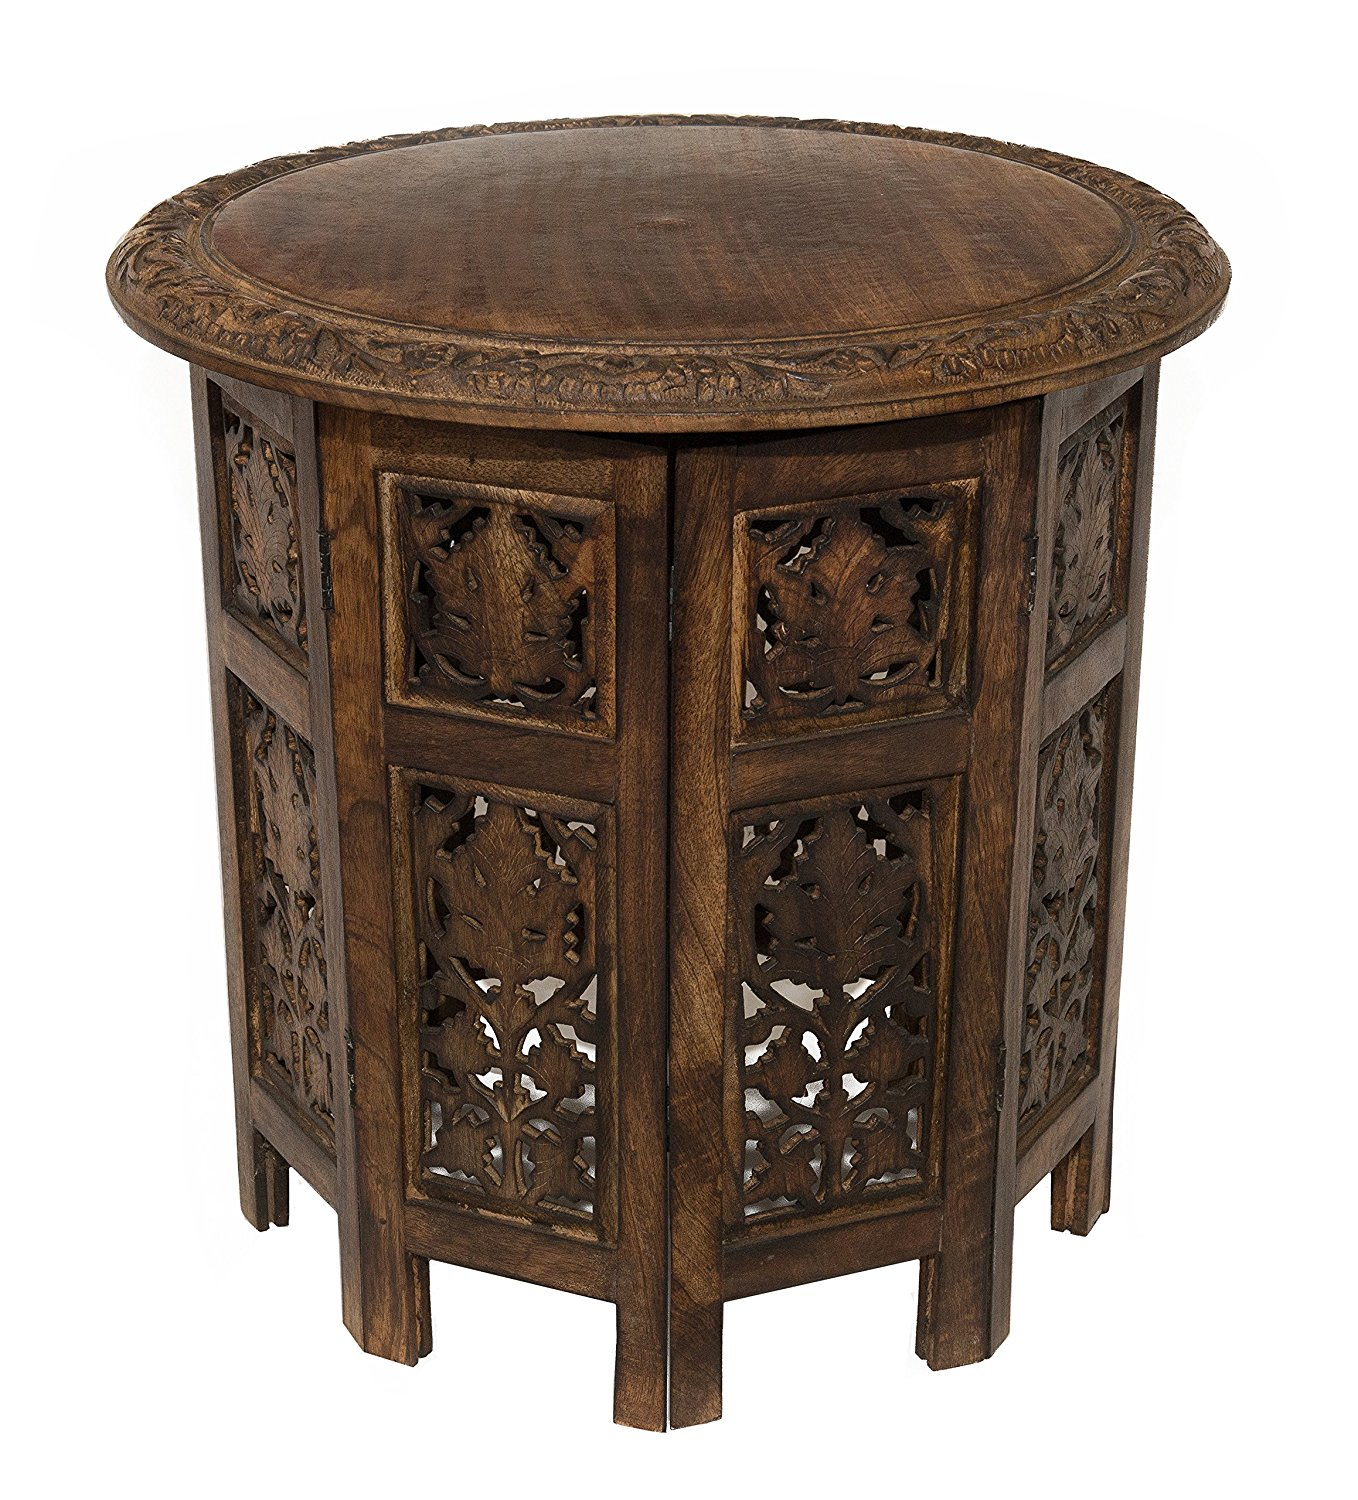 lovely small accent table for ornate end tables with drawers wooden round pottery barn dining and chairs entryway furniture mirror black gold linens art desk hobby lobby silver